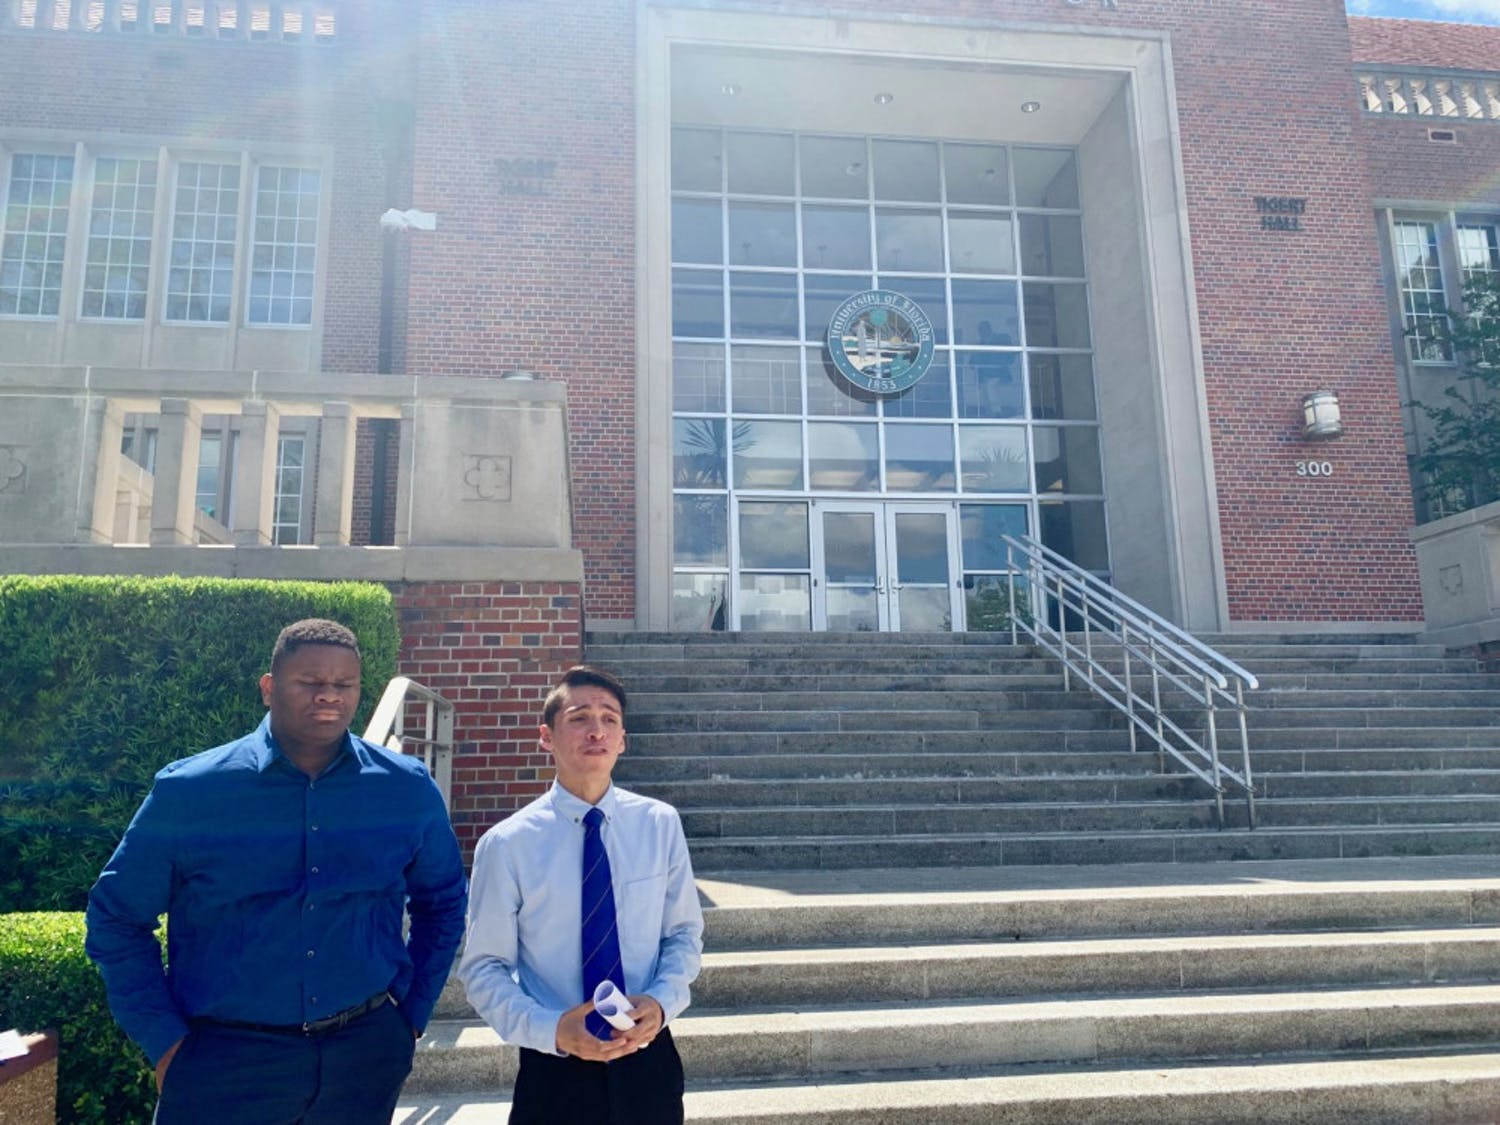 Anthony Rojas, a 23-year-old UF political science master's student, and Mackintosh Joachim, president of the UF chapter of the NAACP, announced a boycott of the university-wide commencement ceremony on Friday afternoon outside Tigert Hall.